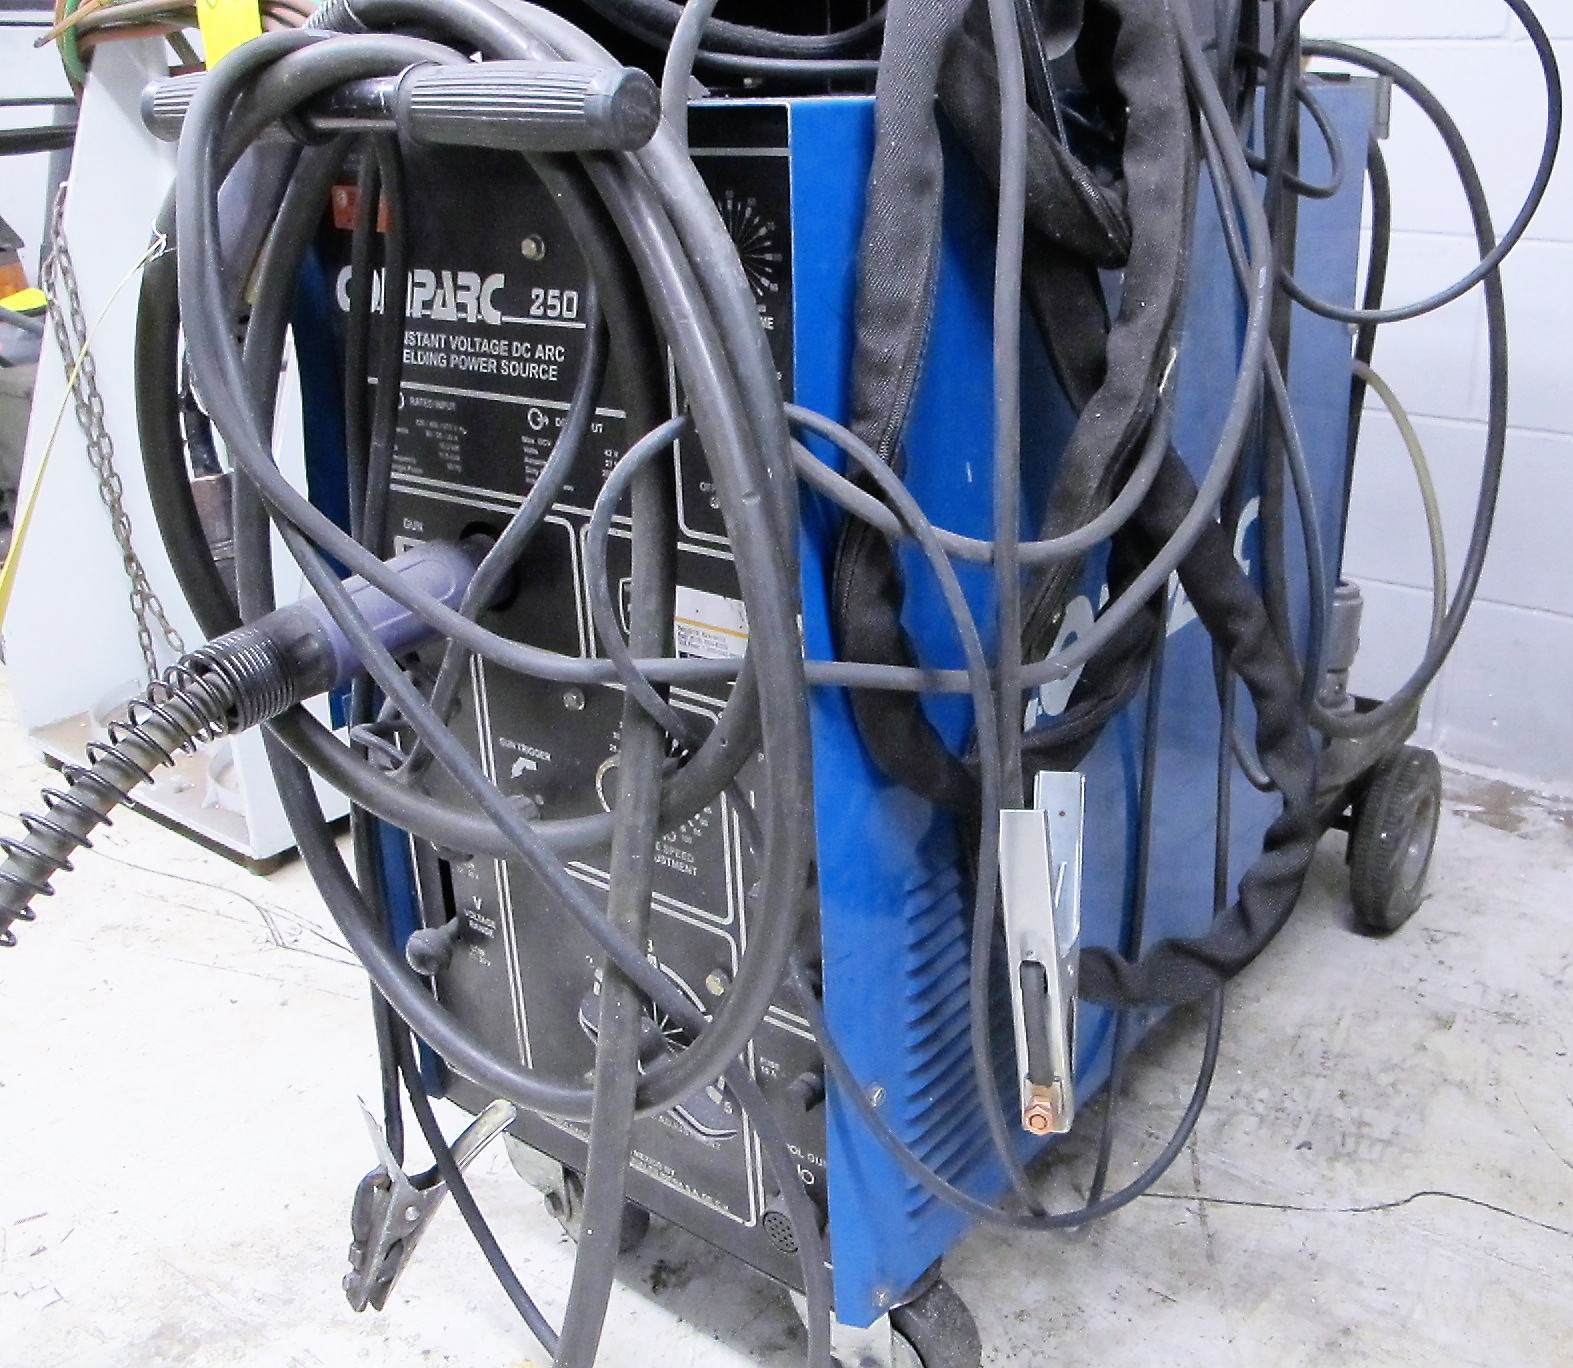 COMPARC 250 SP MIG WELDER W/CABLES, GUN AND CART